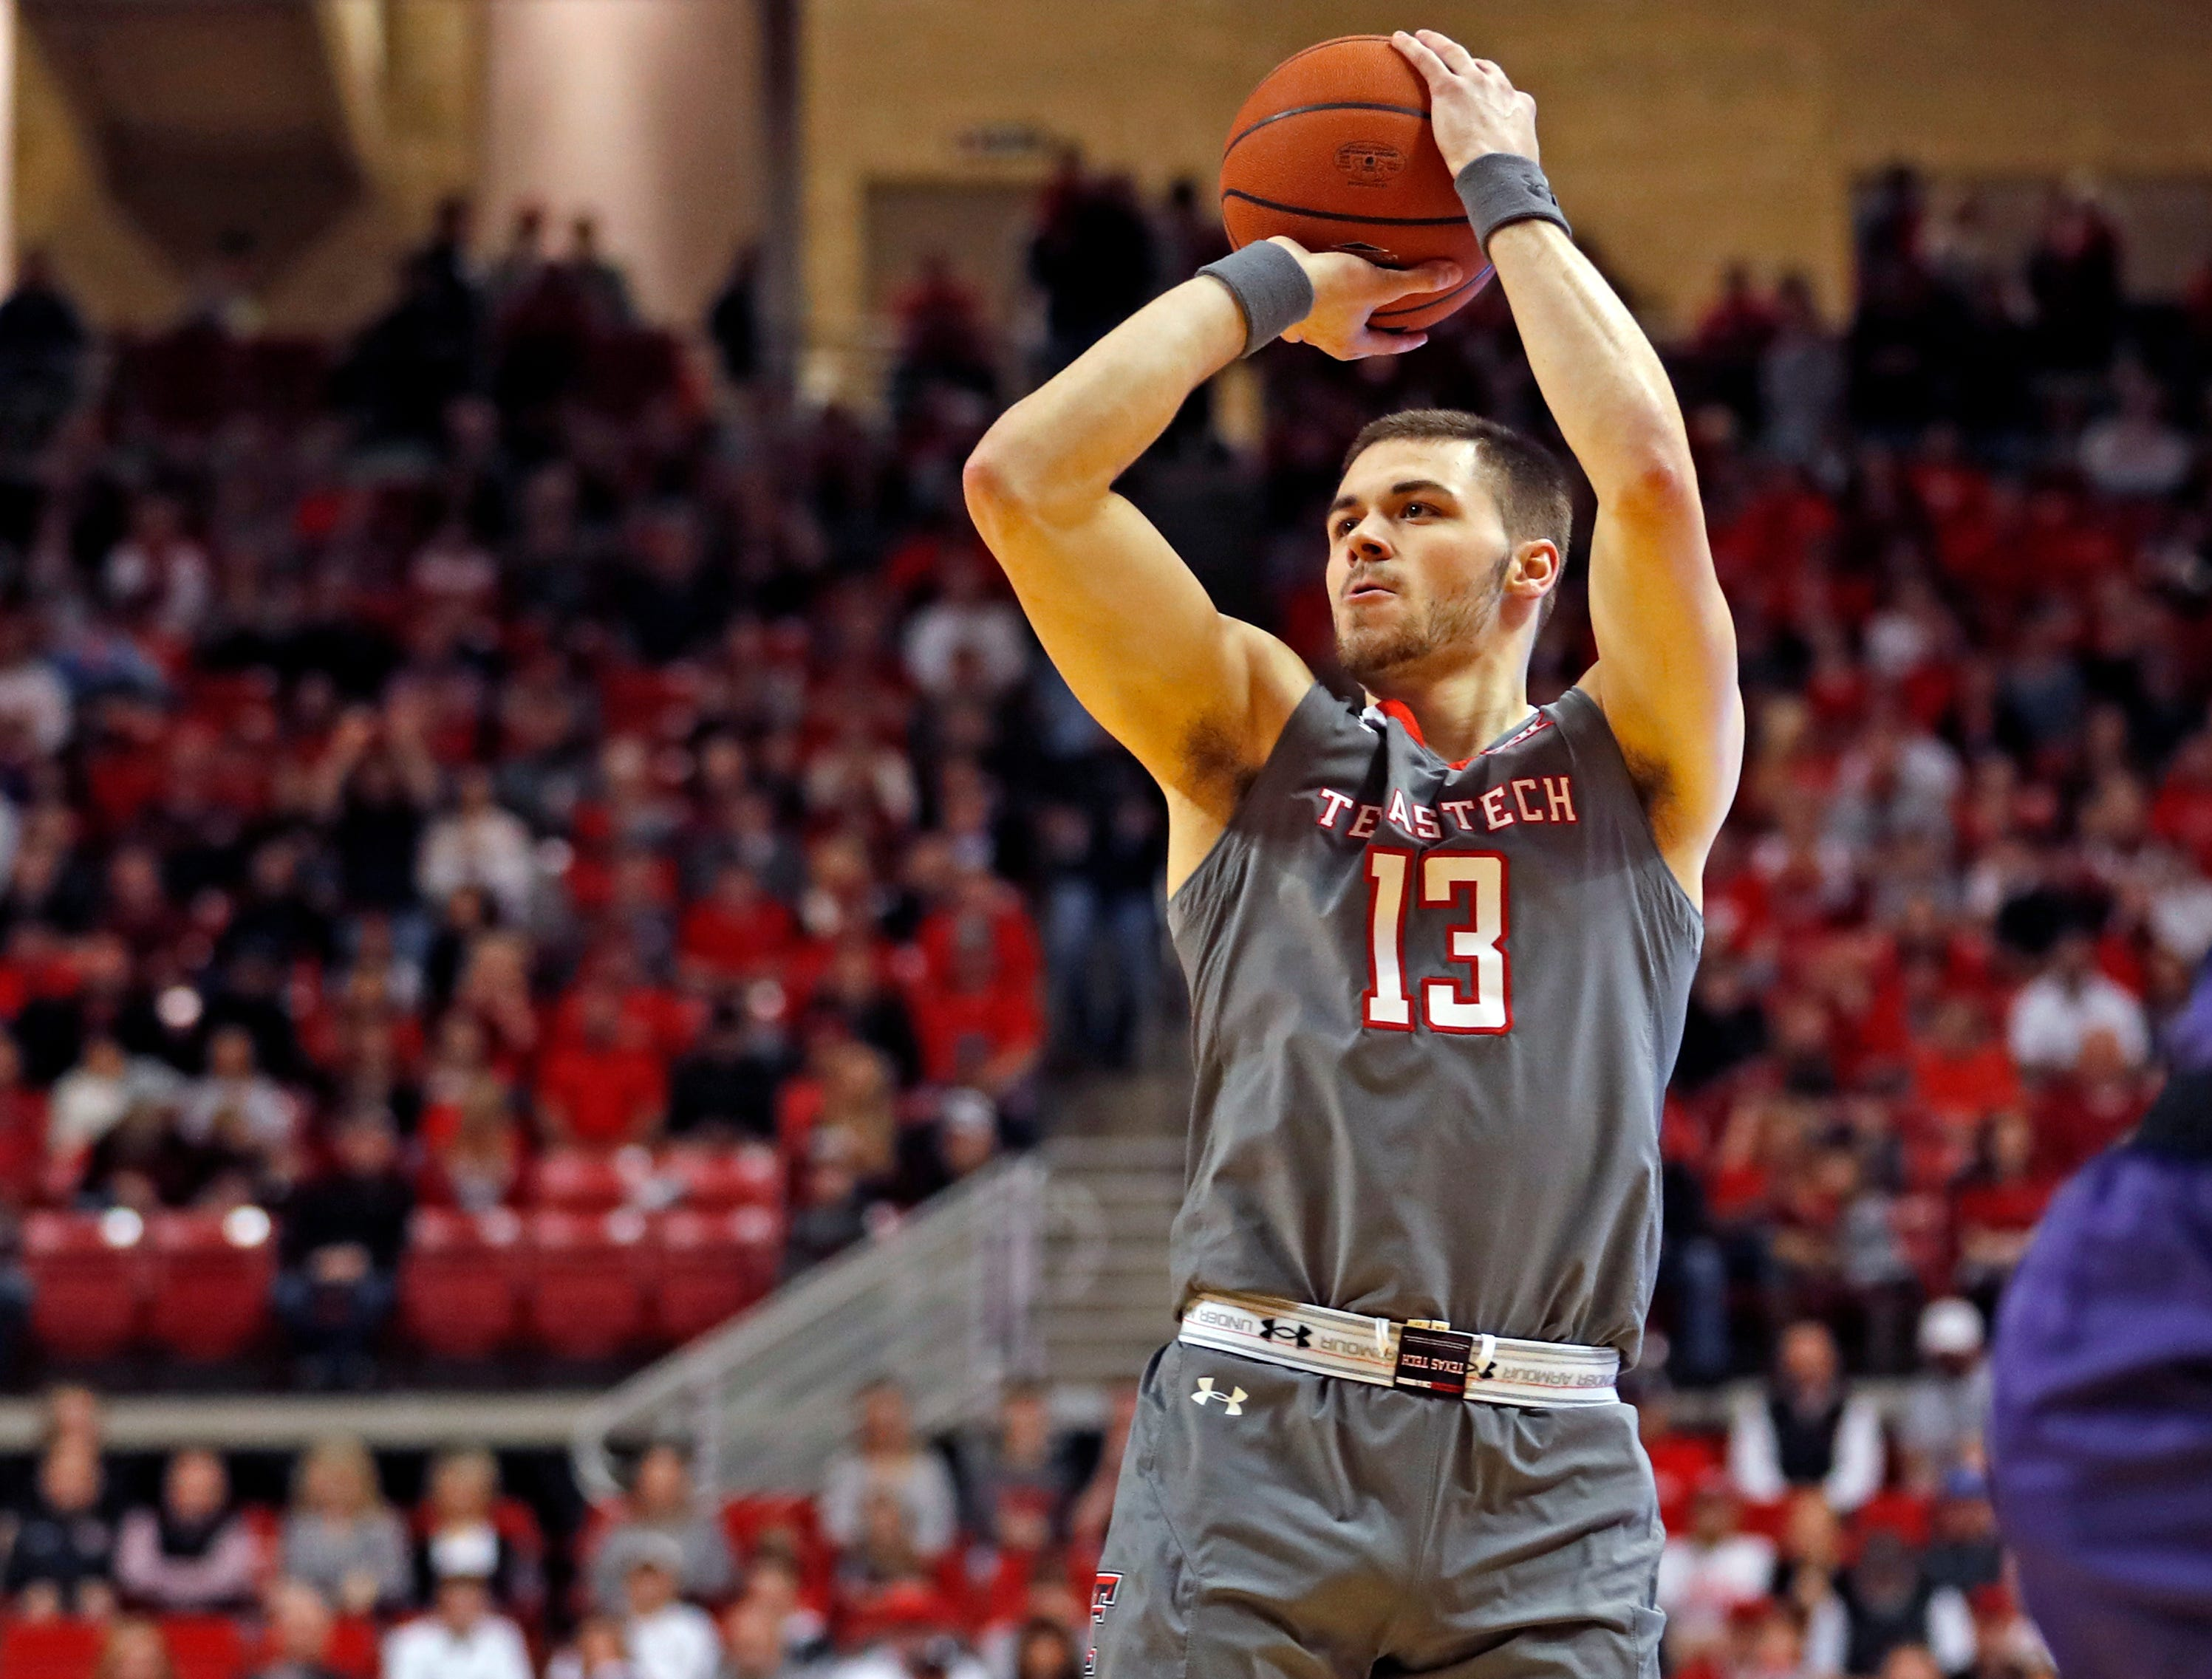 Texas Tech's Matt Mooney (13) shoots the ball for three points during the first half of an NCAA college basketball game against Kansas State, Saturday, Jan. 5, 2019, in Lubbock, Texas. (AP Photo/Brad Tollefson)